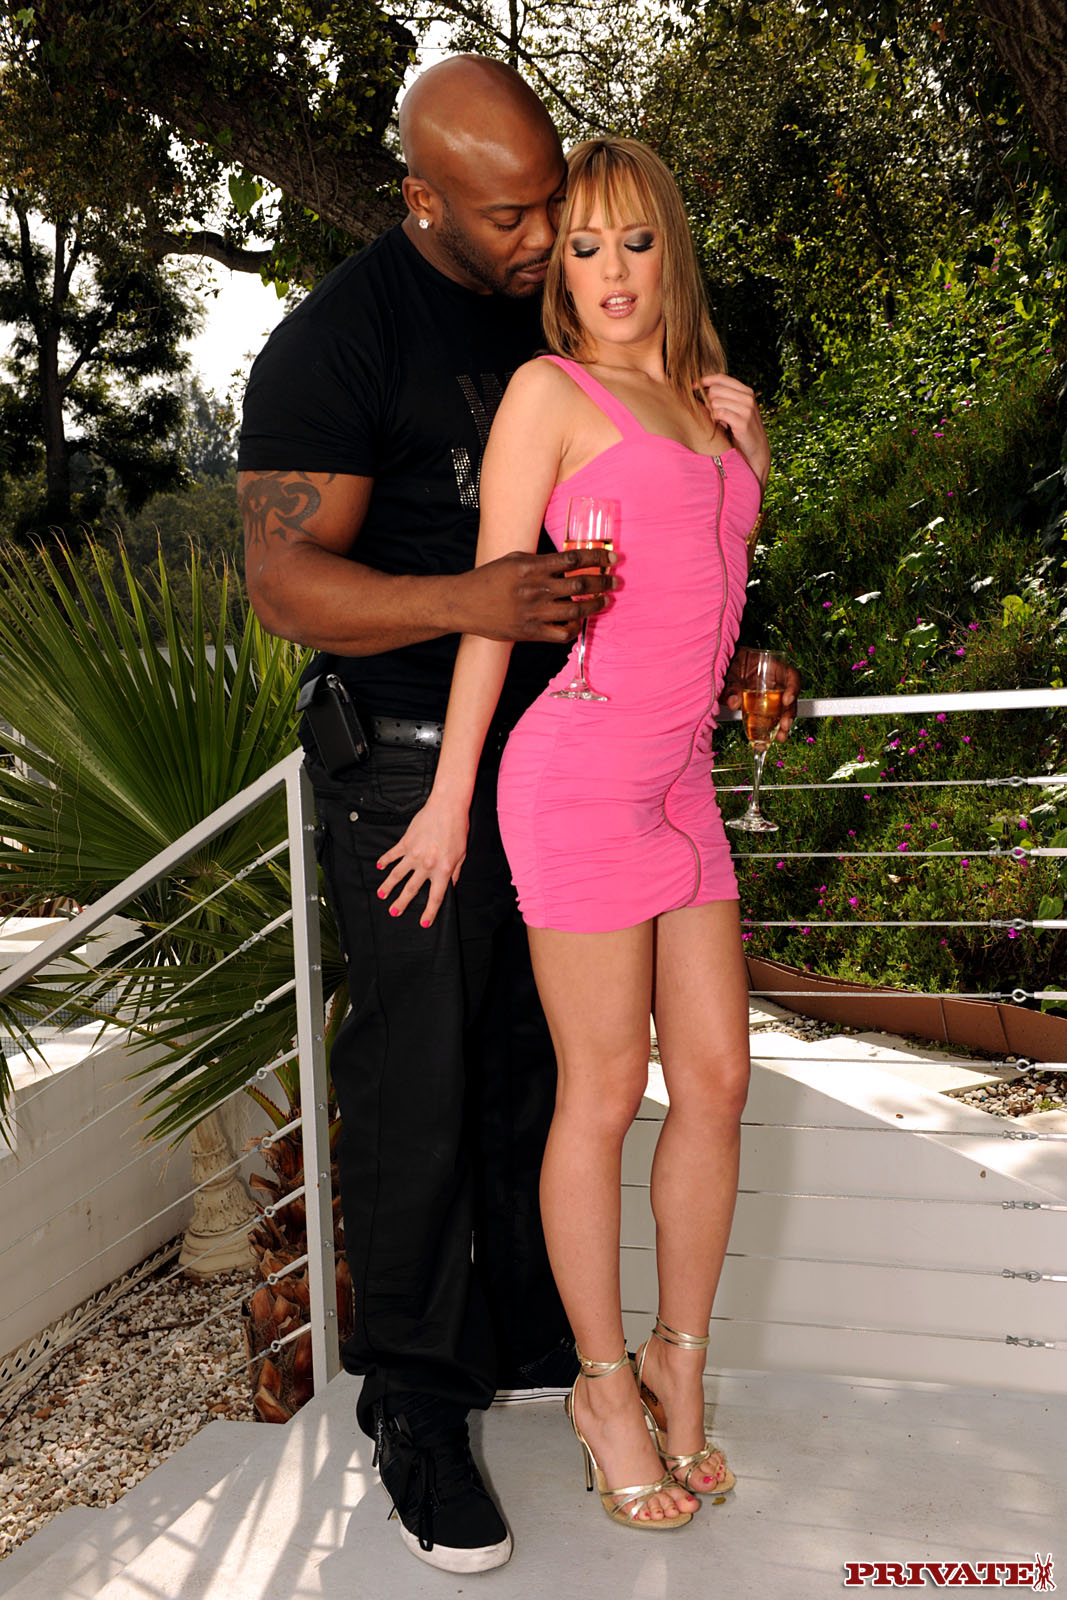 interracial porn blue dress - Slim babe lifts up her short pink dress to take black cock up her horny  pussy